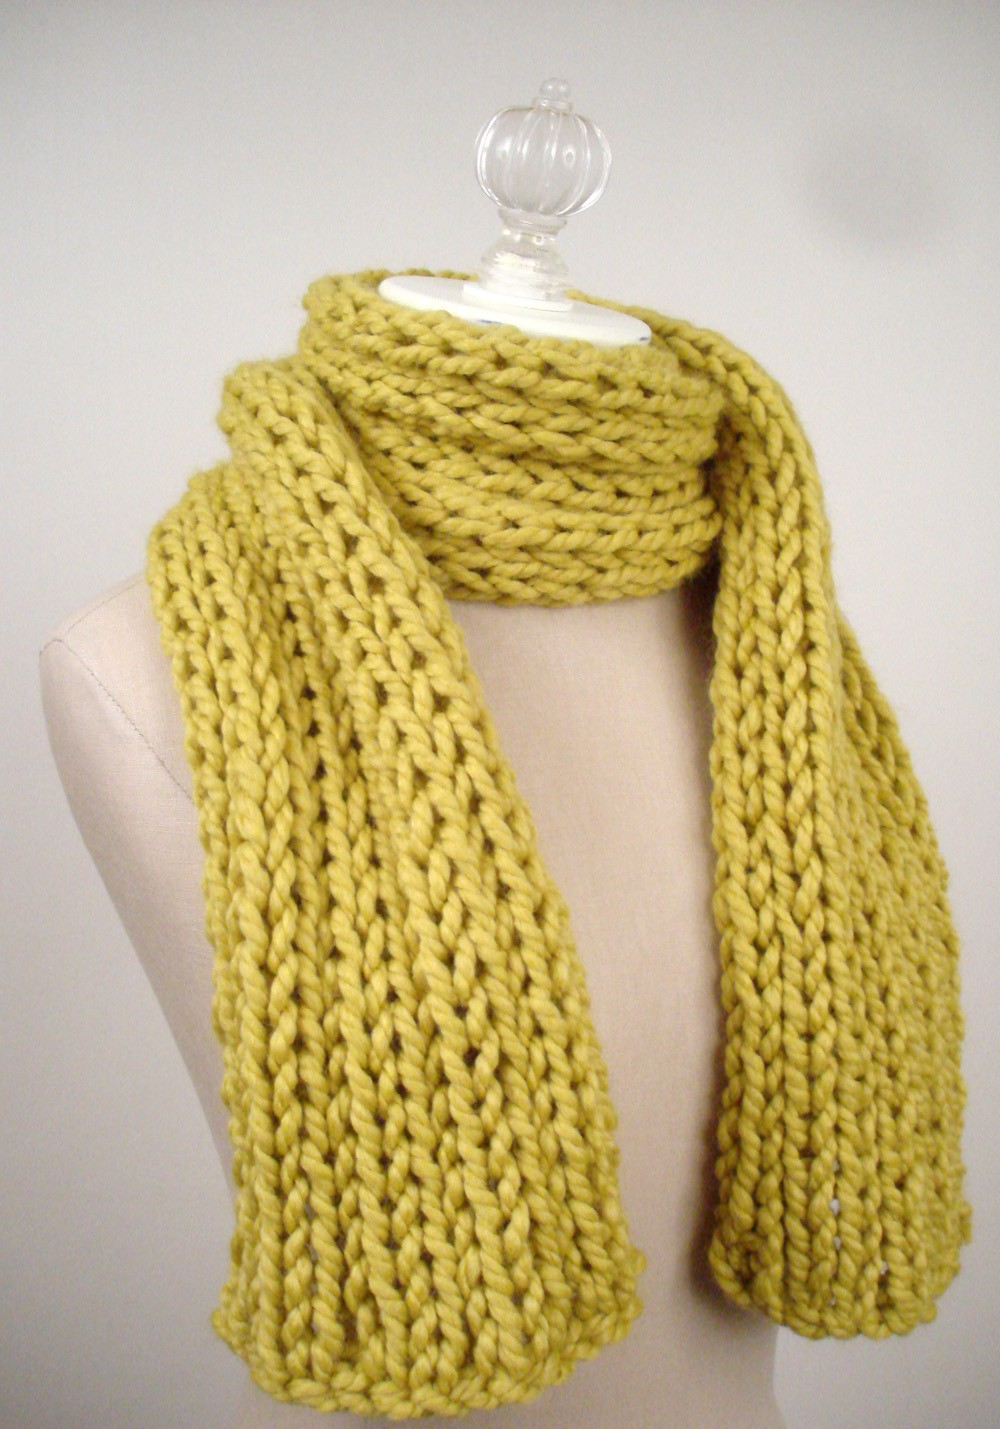 Knitting Stitches For Scarves : EASY KNIT SCARF PATTERNS   Free Patterns